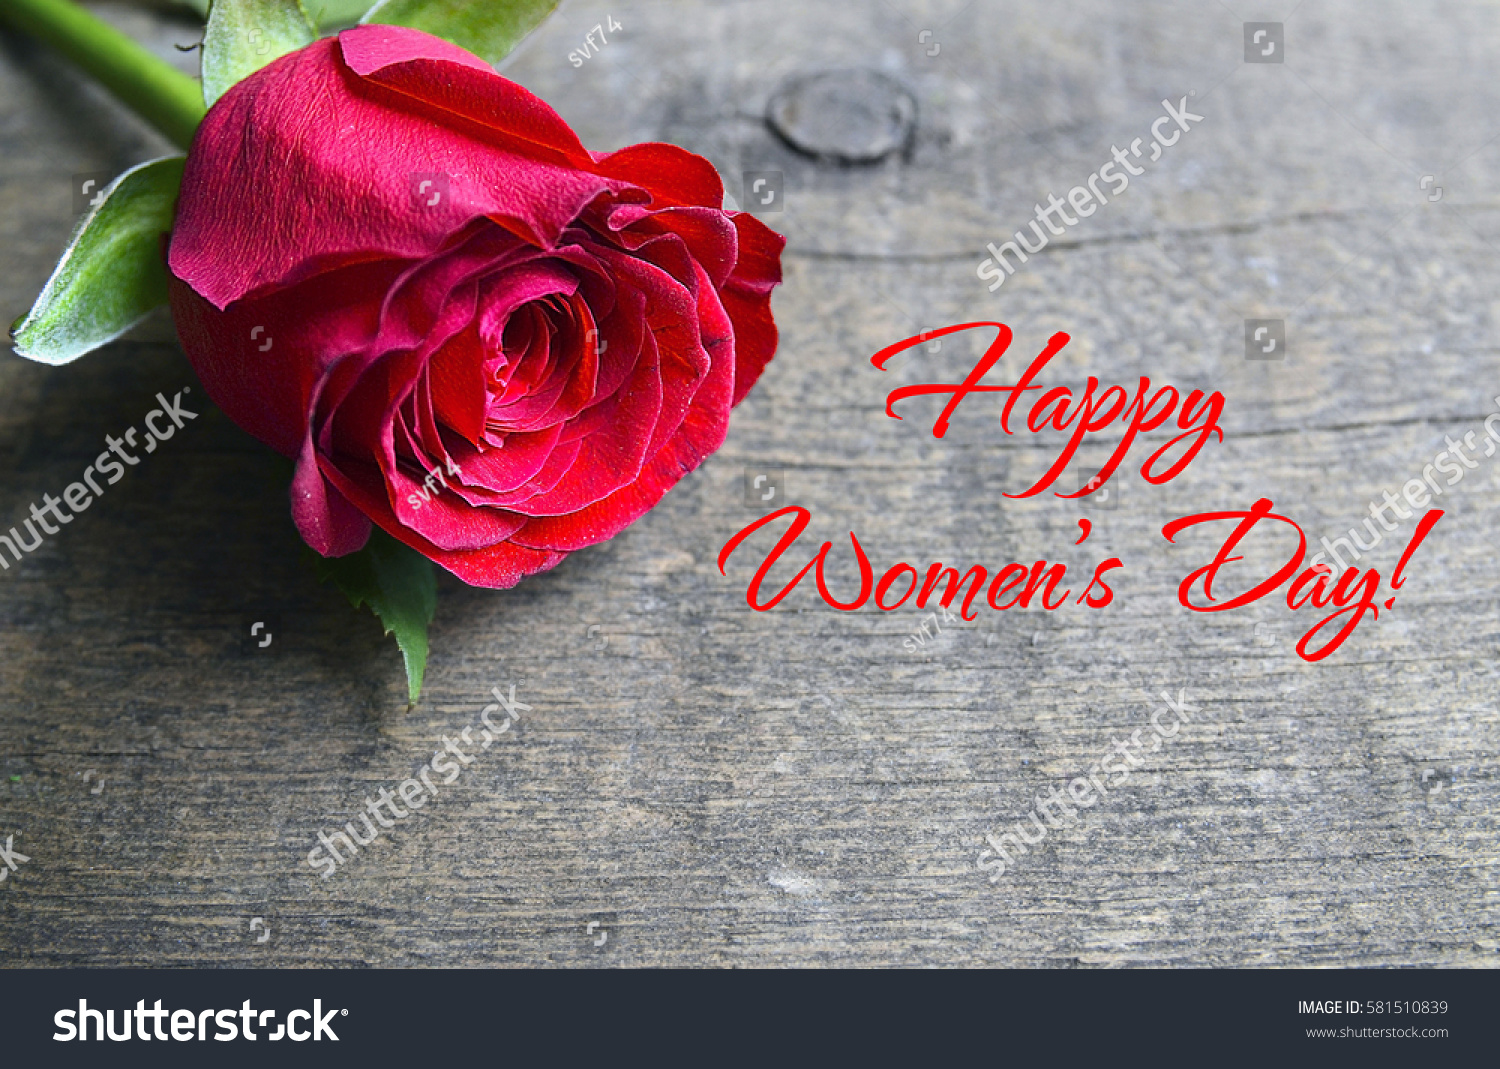 Happy Womens Day Greeting Message Rose Stock Photo Edit Now